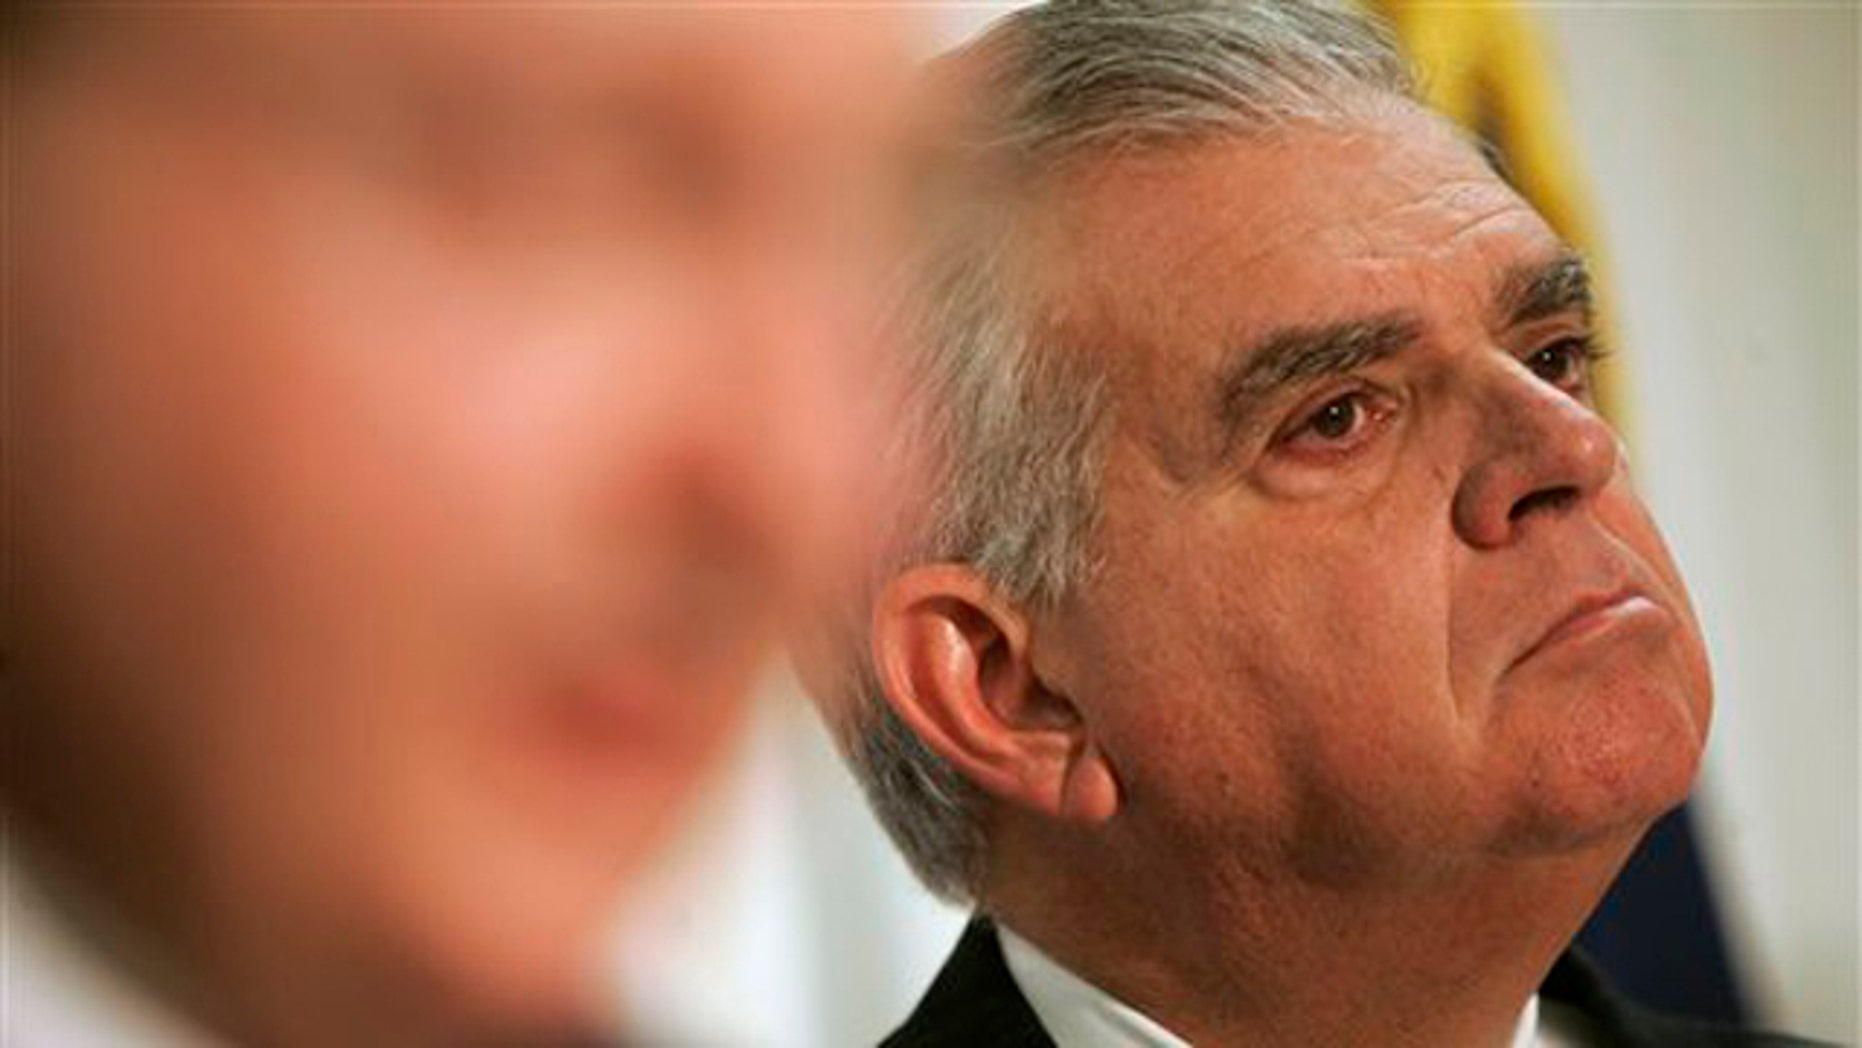 Transportation Secretary Ray LaHood, right, is shown here at a news conference in Allentown, Pa., March 4.